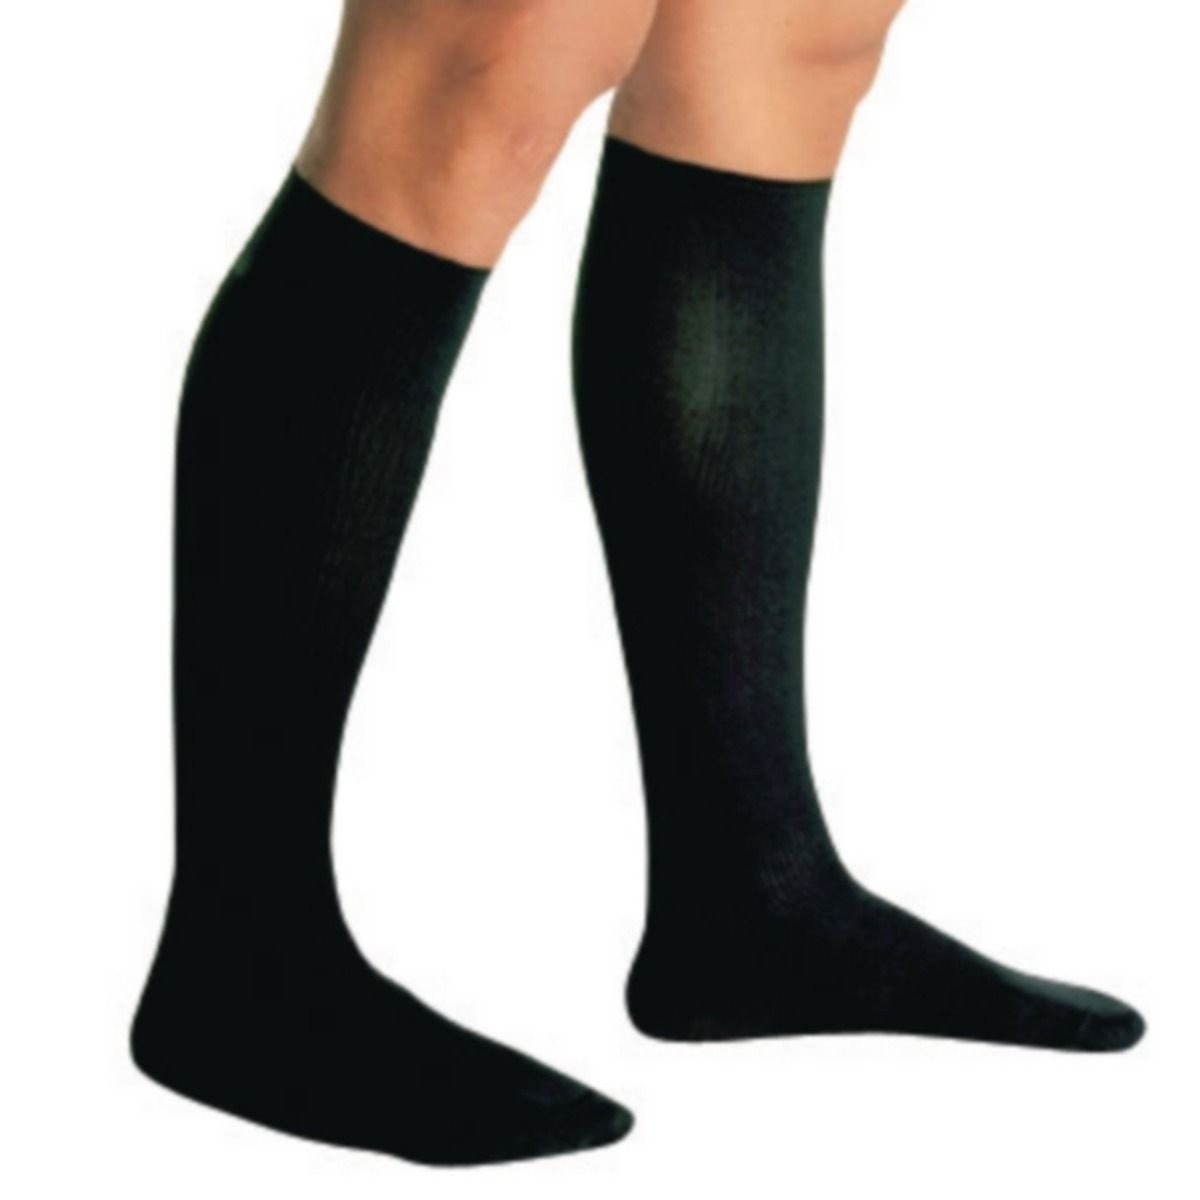 Physical Therapy Aids 081568955 Men's Support Knee High Stockings, X-Large